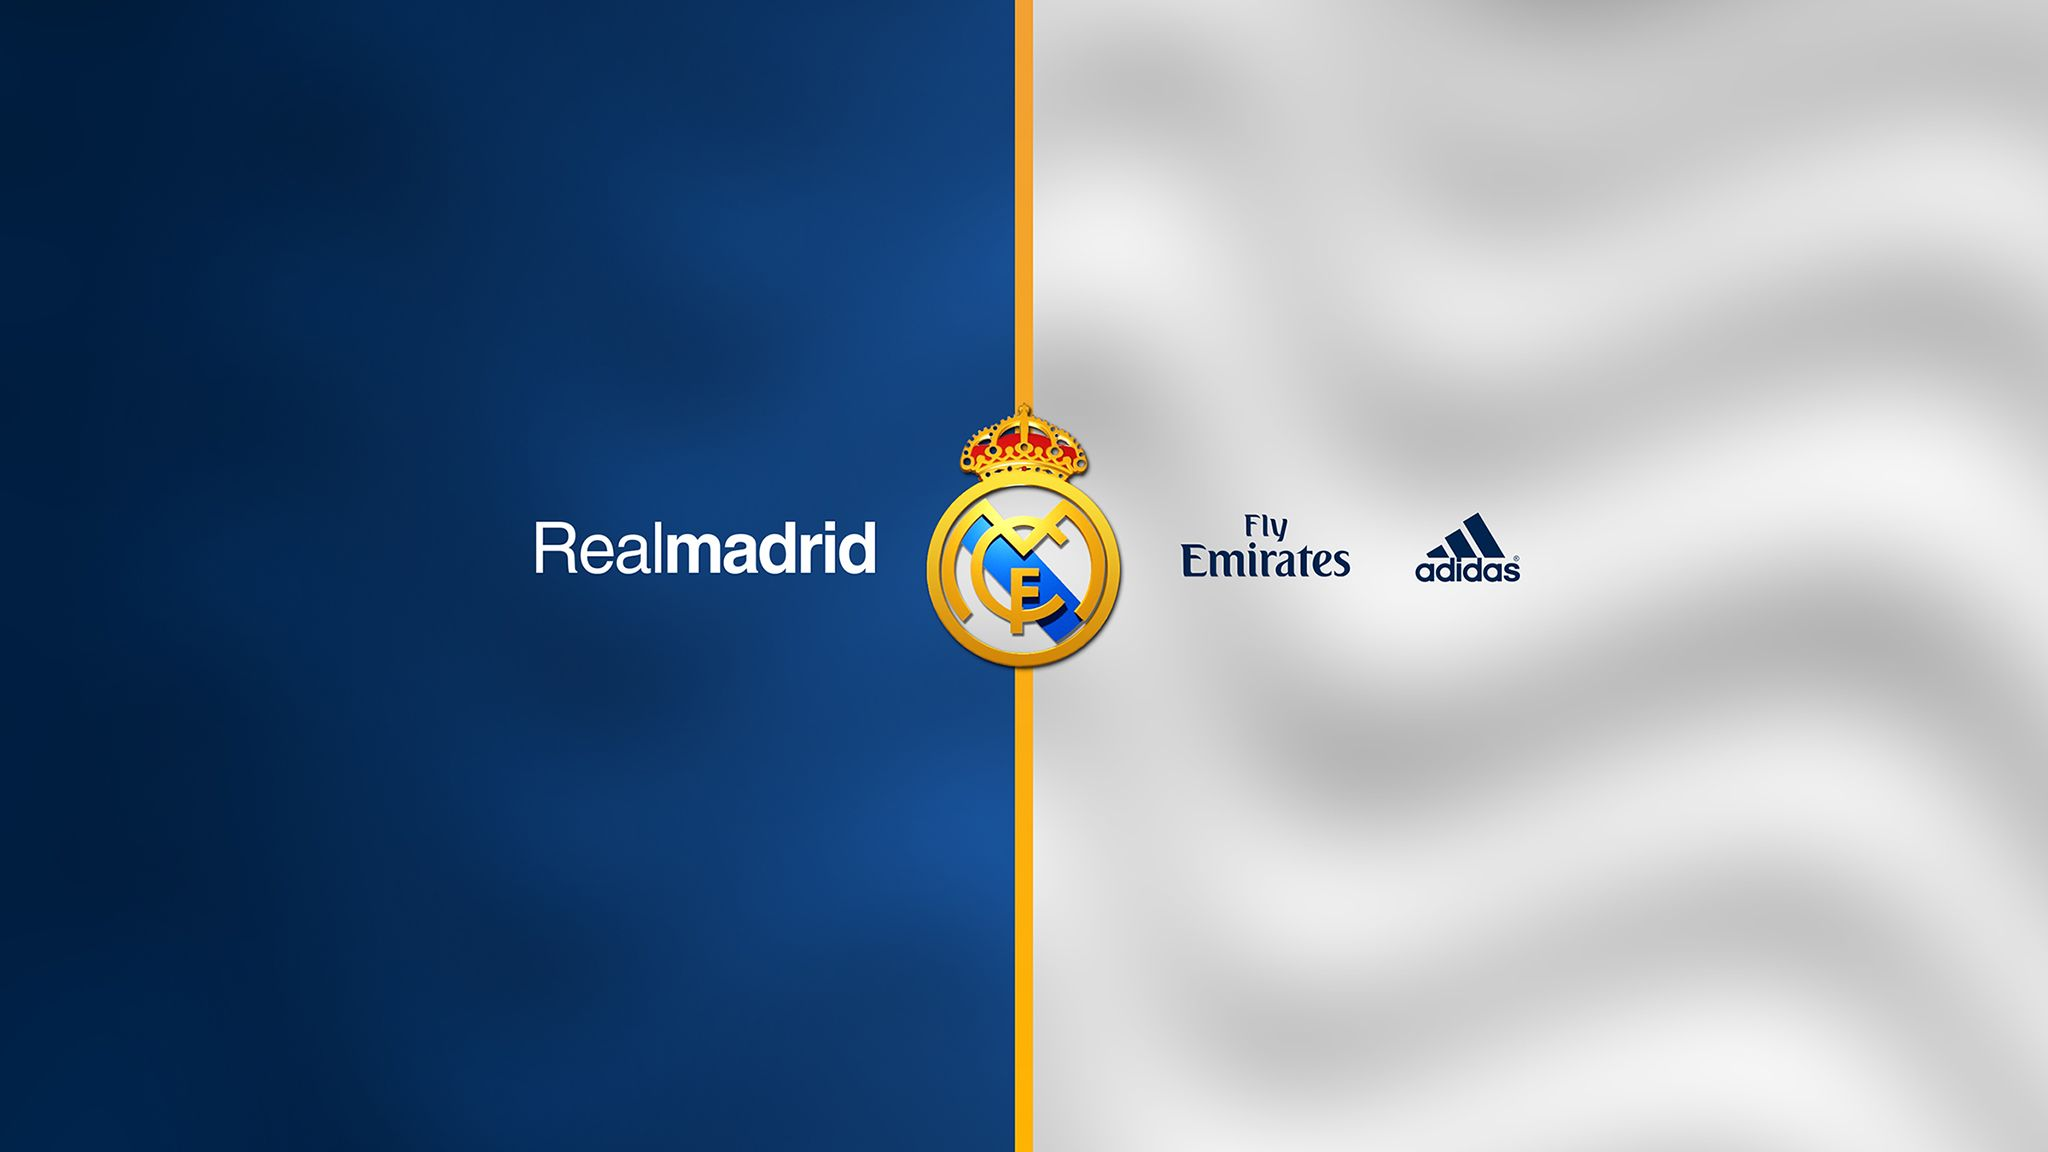 Real Madrid Wallpaper Fondos Del Real Madrid Real Madrid Bernabeu